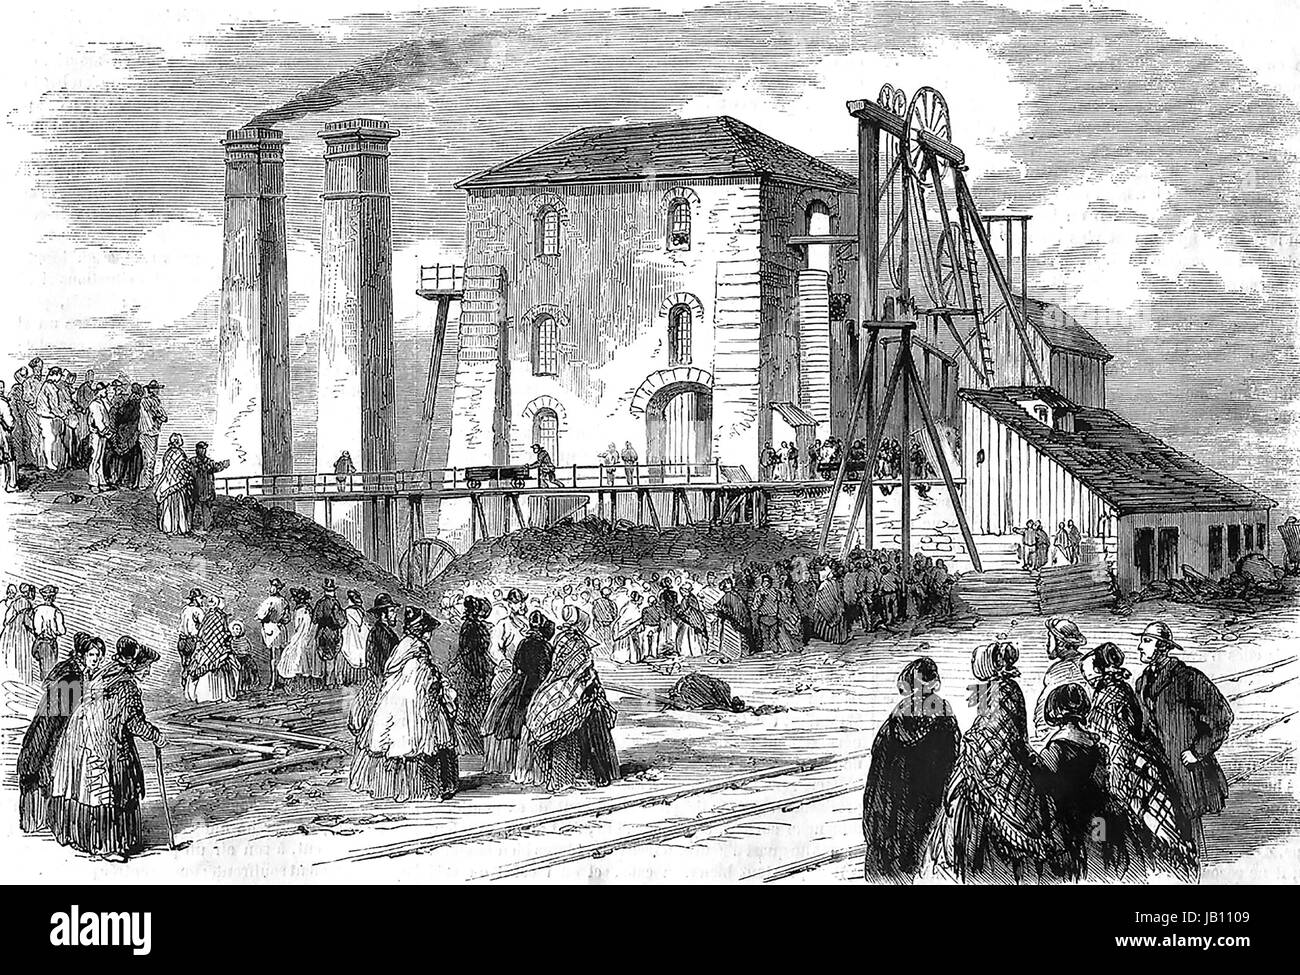 HARTLEY COLLIERY DISASTER 16 January 1862. Crowds outside the Northumberland coal mine after a pumping engine broke - Stock Image